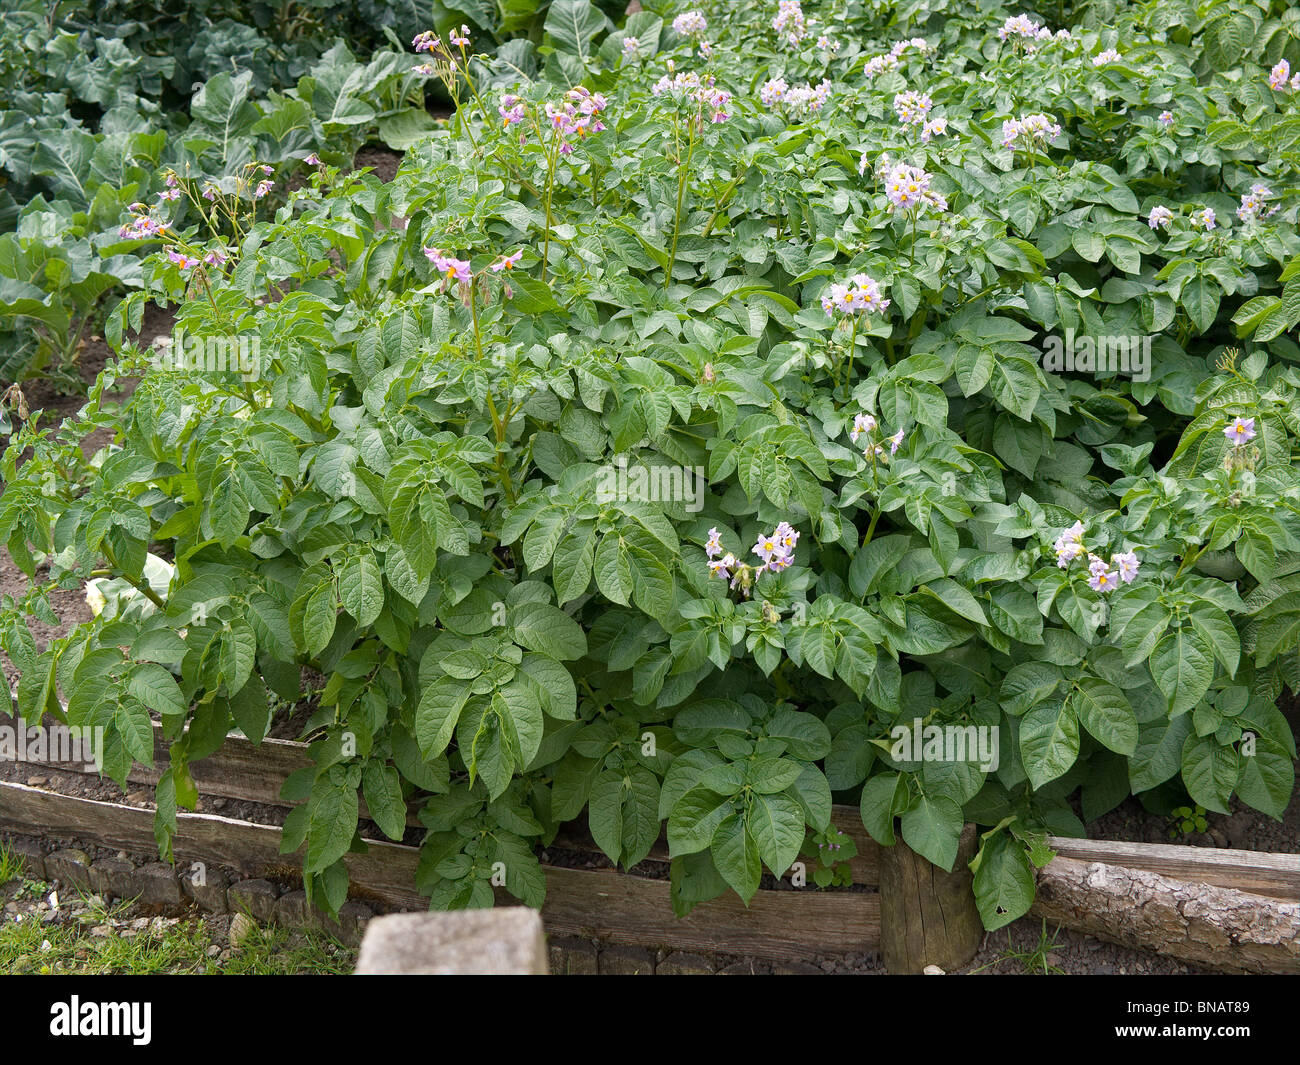 Flourishing potato plants in a cottage garden at Hutton le Hole North Yorkshire - Stock Image